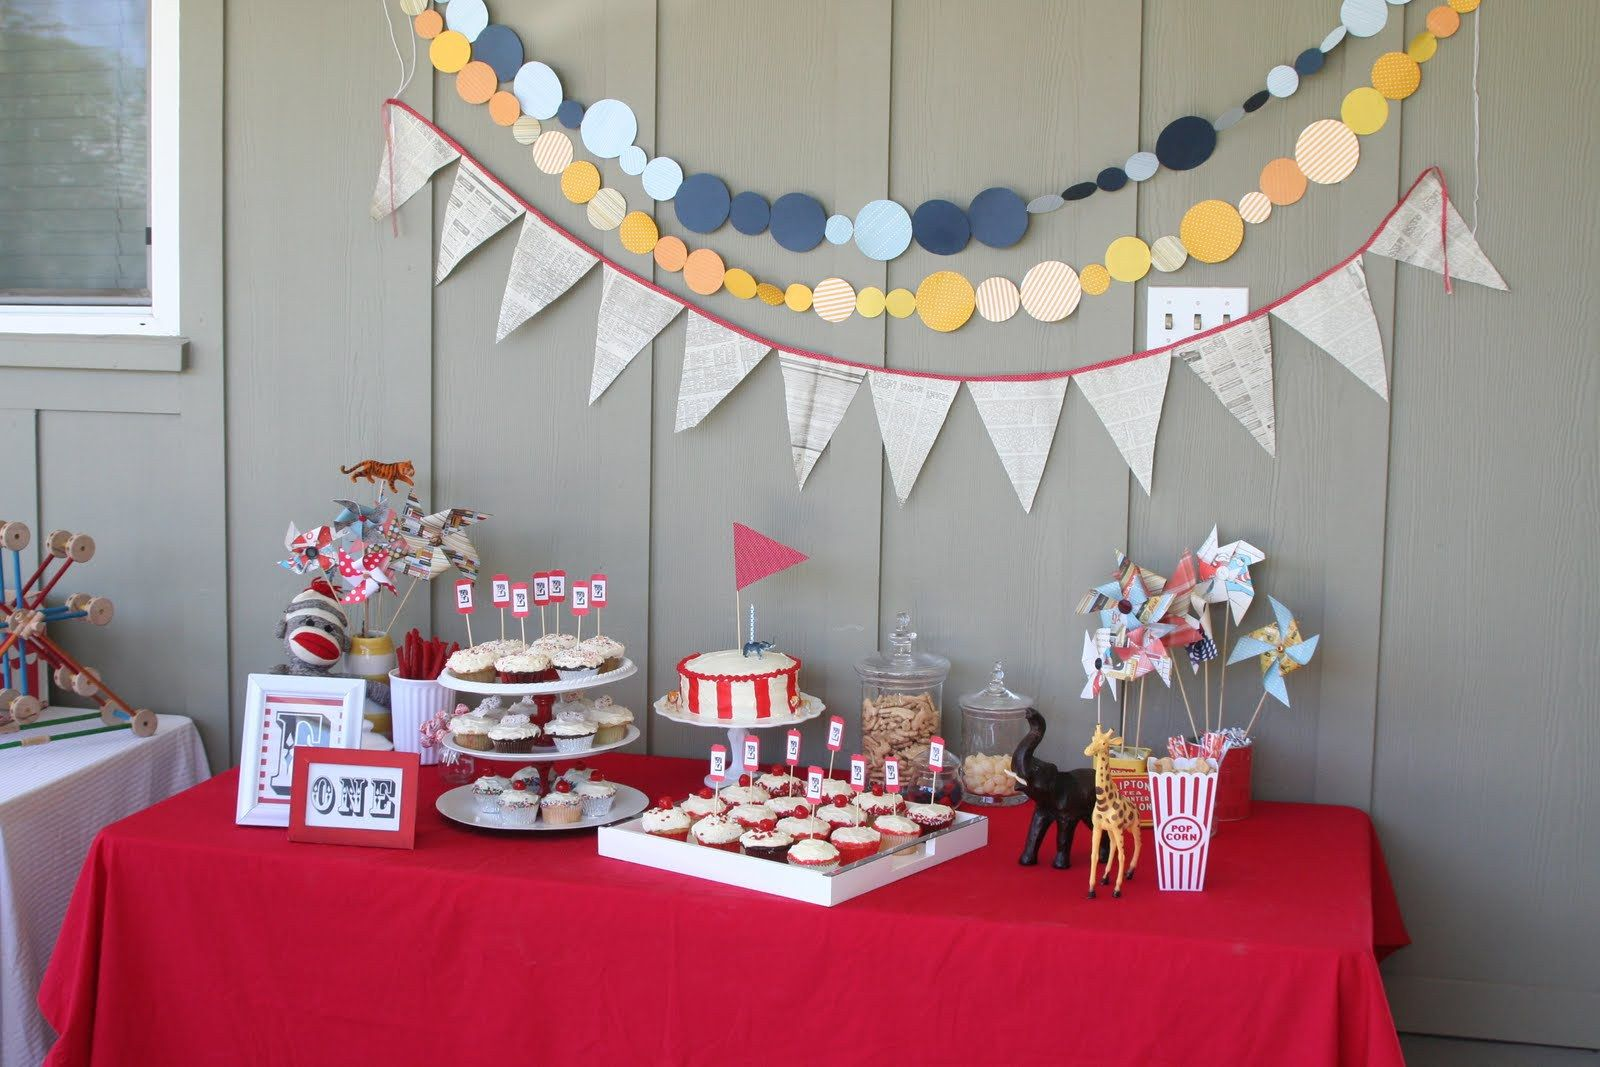 Simple birthday table decoration ideas - Decorations Marvelous Birthday Party Decoration Ideas Outdoor With Simple Party Decoration Balloons That Also Decorated Flowers On The Table From 20